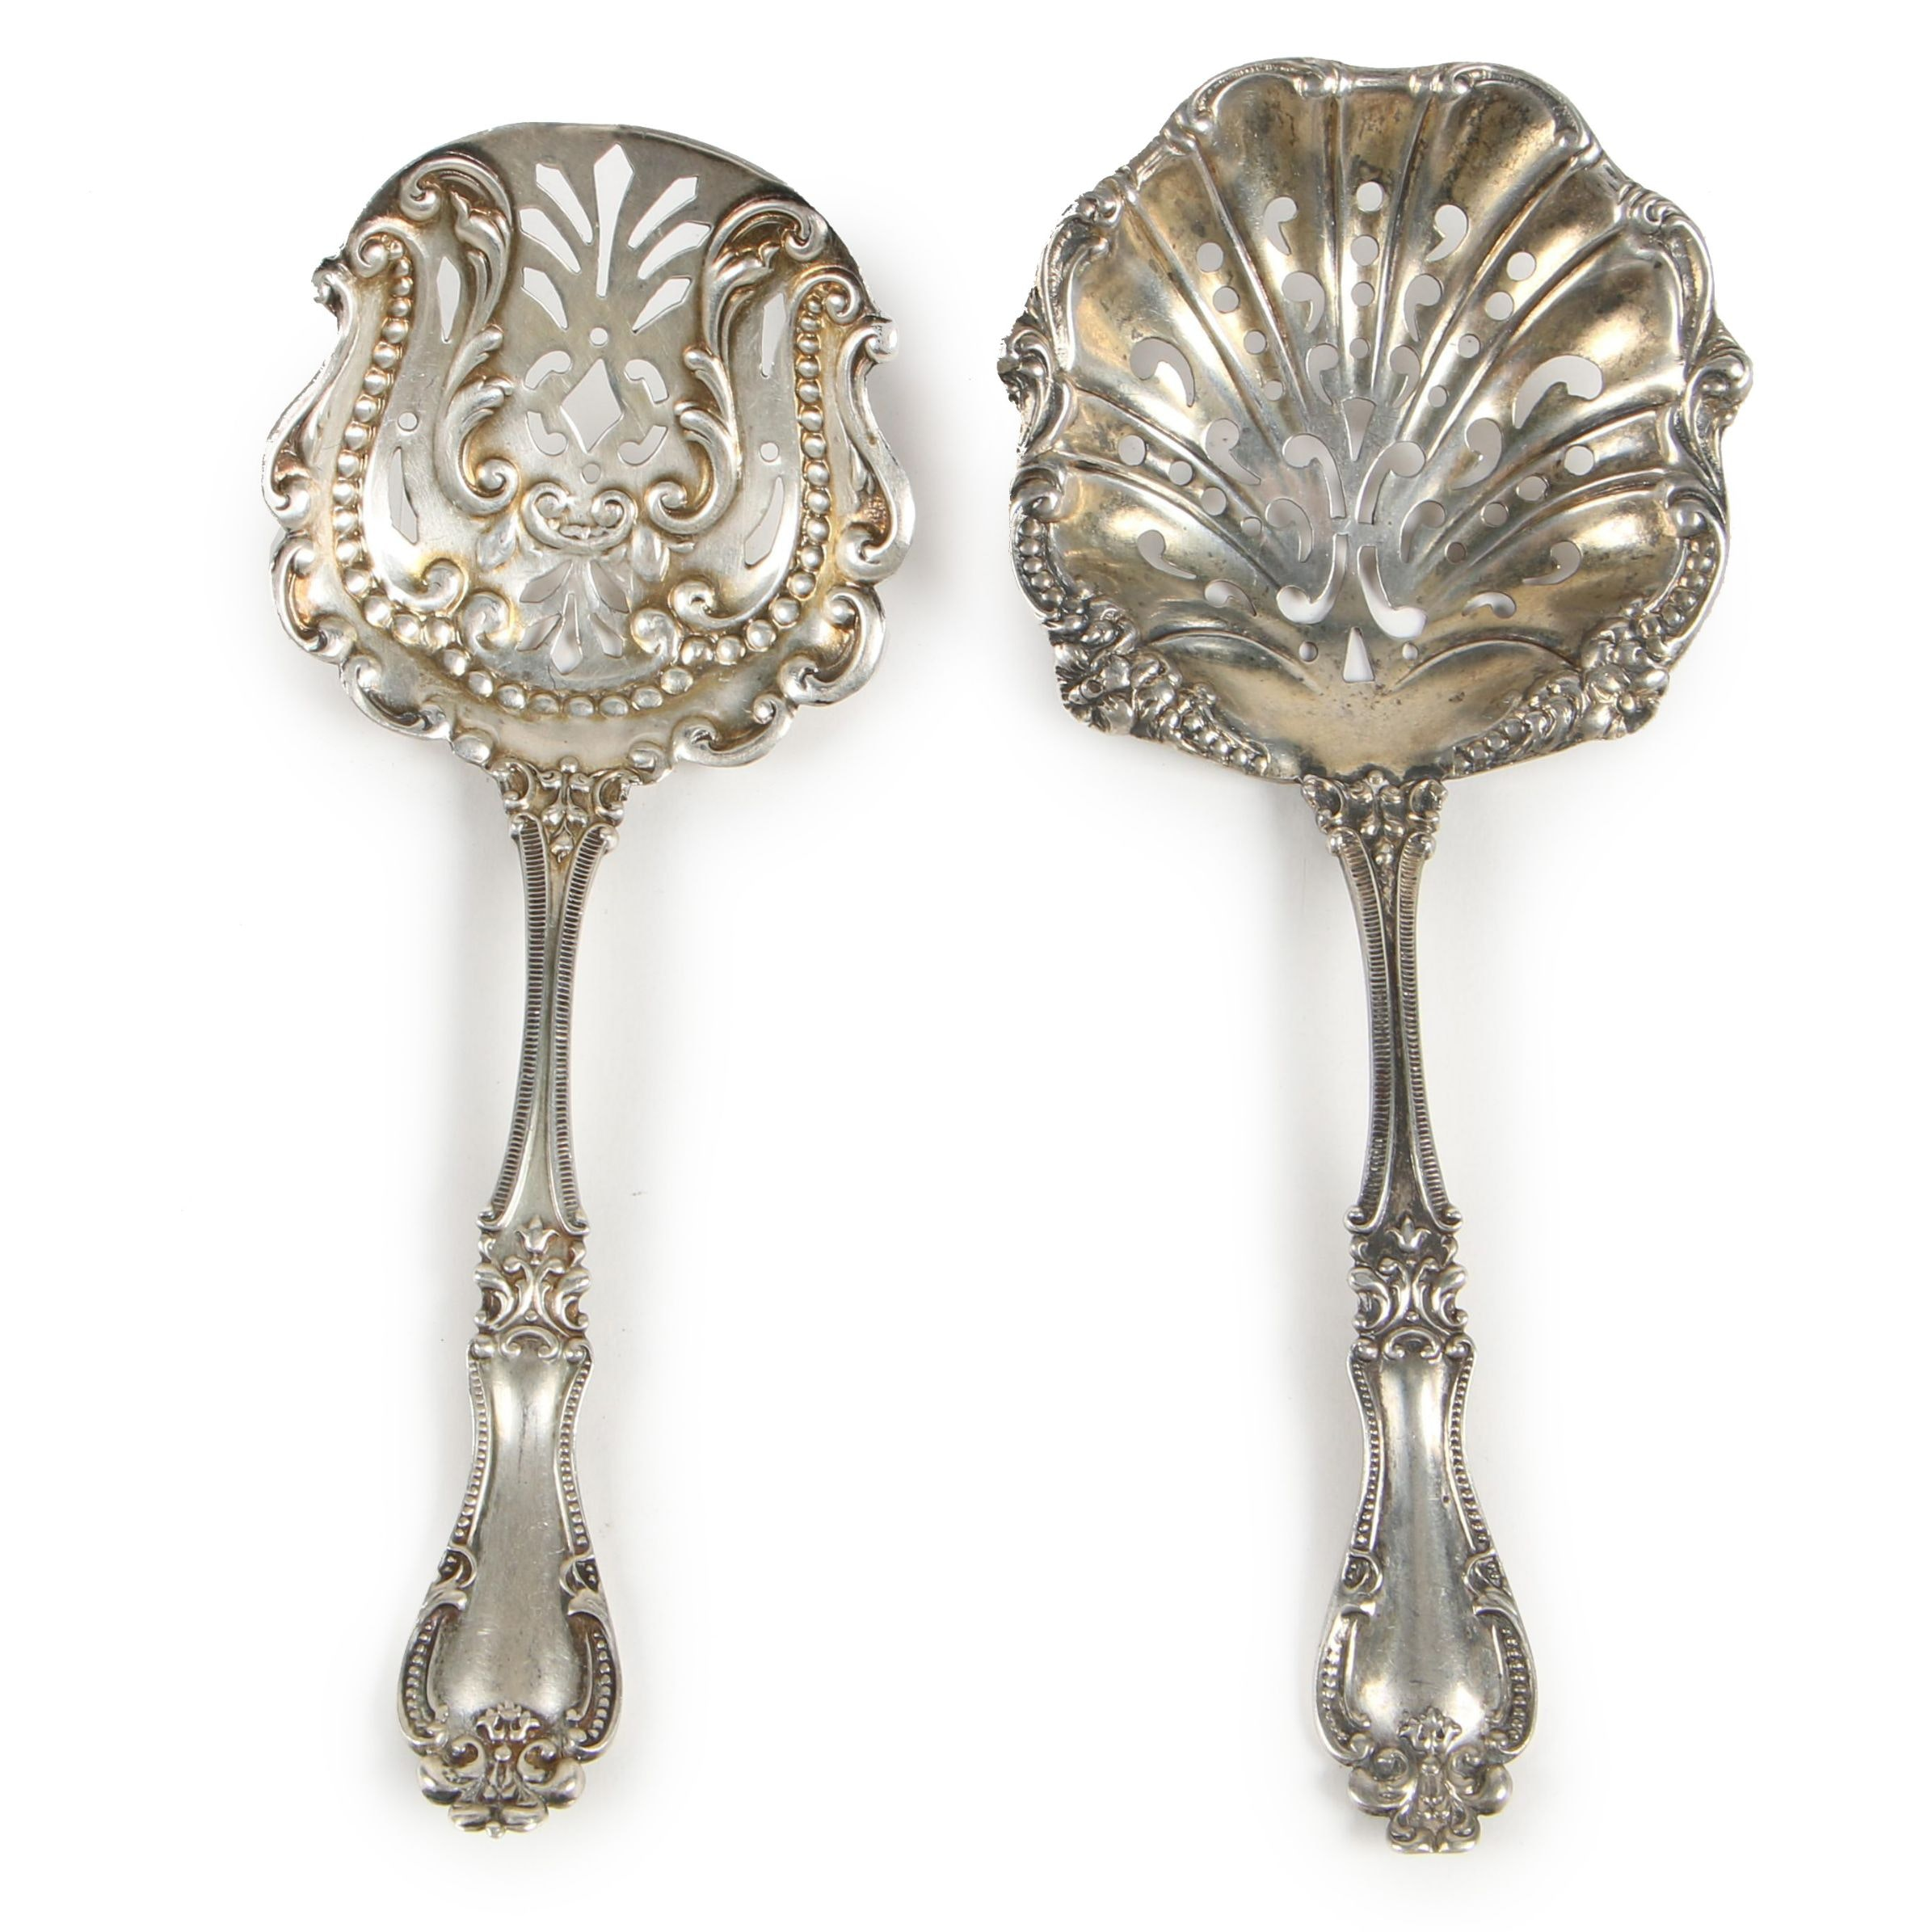 """R. Blackinton & Co. """"Helena"""" Sterling Silver Bonbon Spoon and Scoop, 1900–1967"""